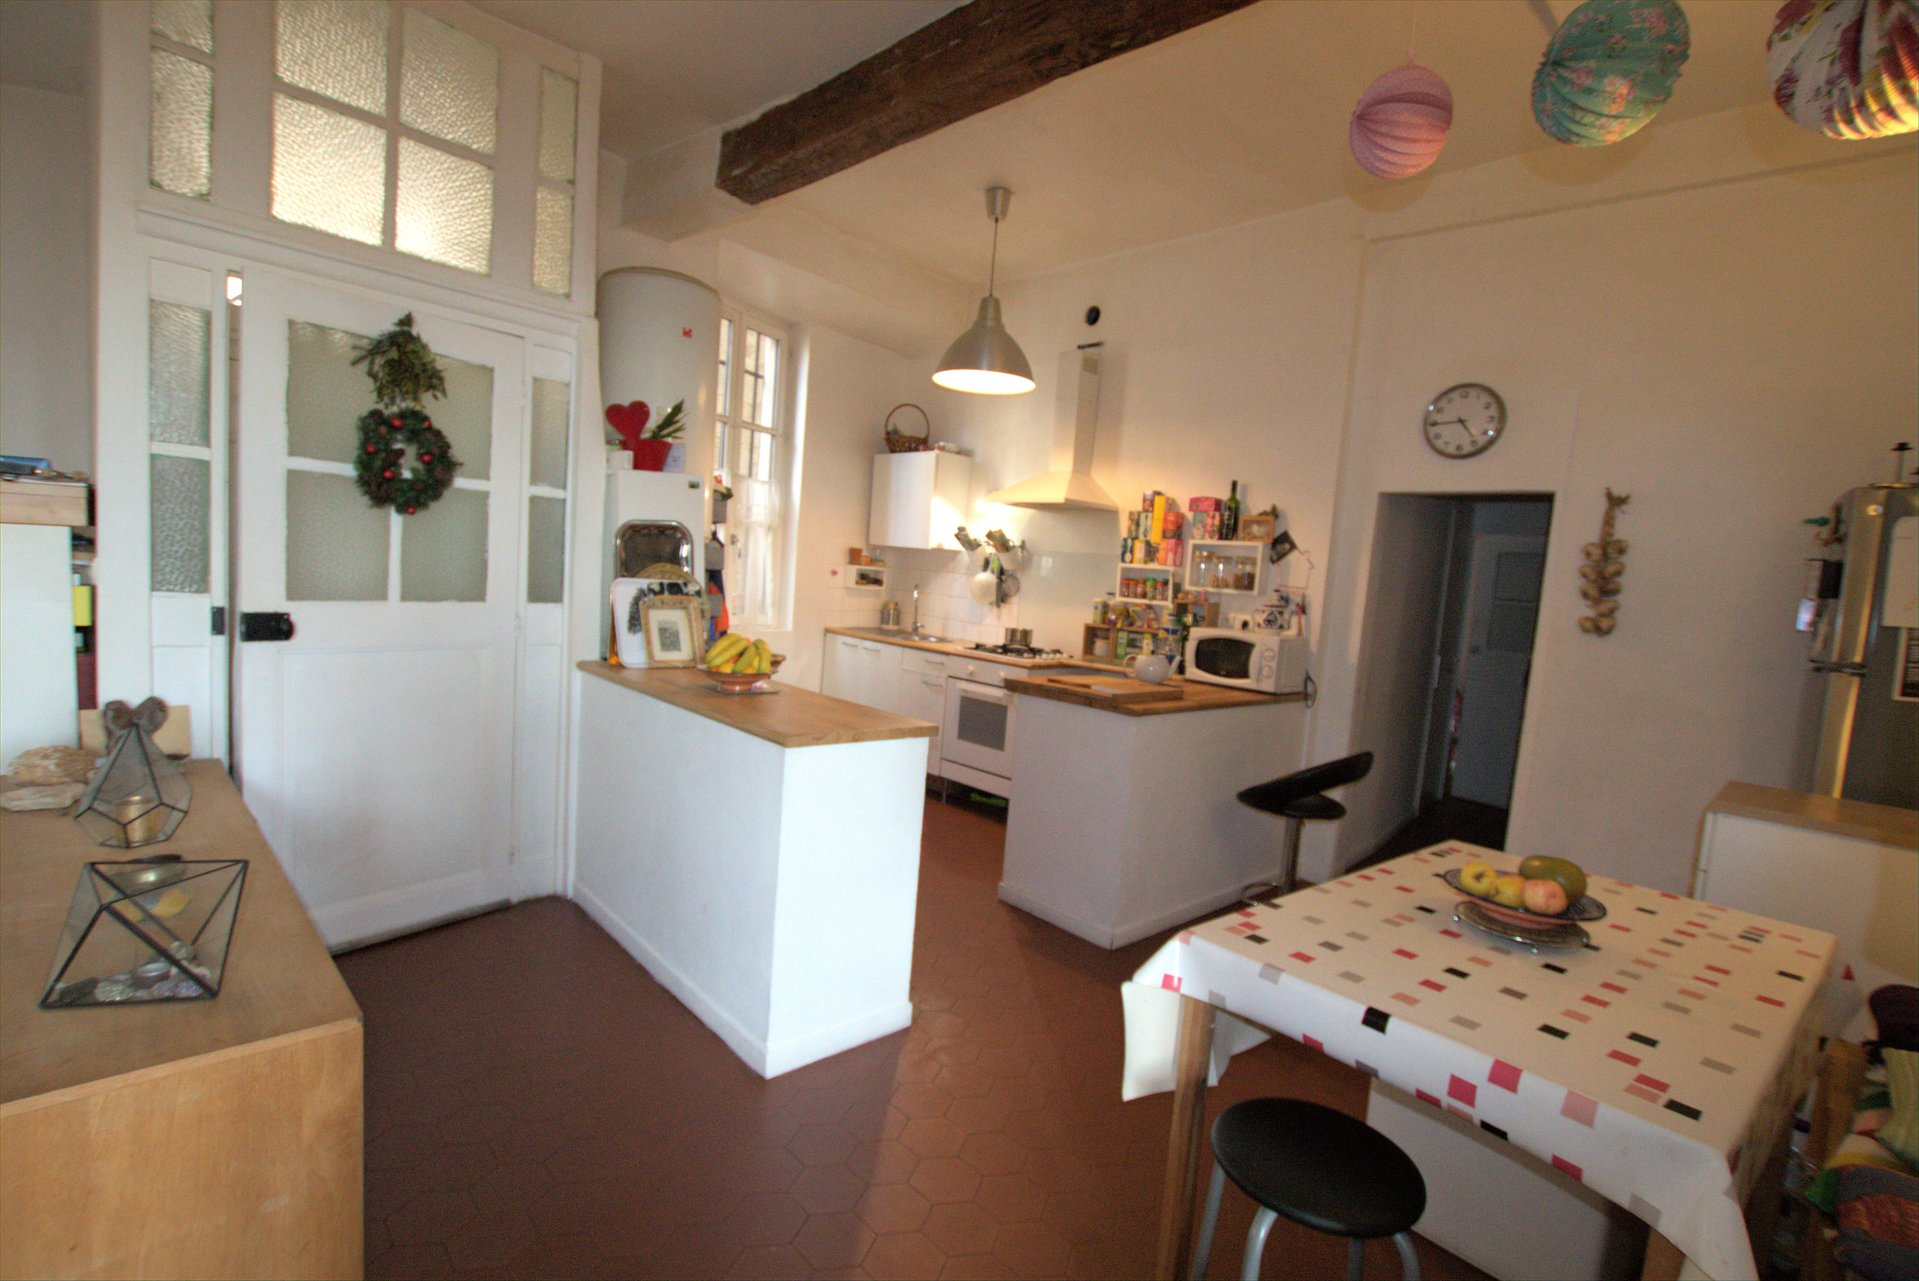 Charming 3 room apartment in the old town of Grasse